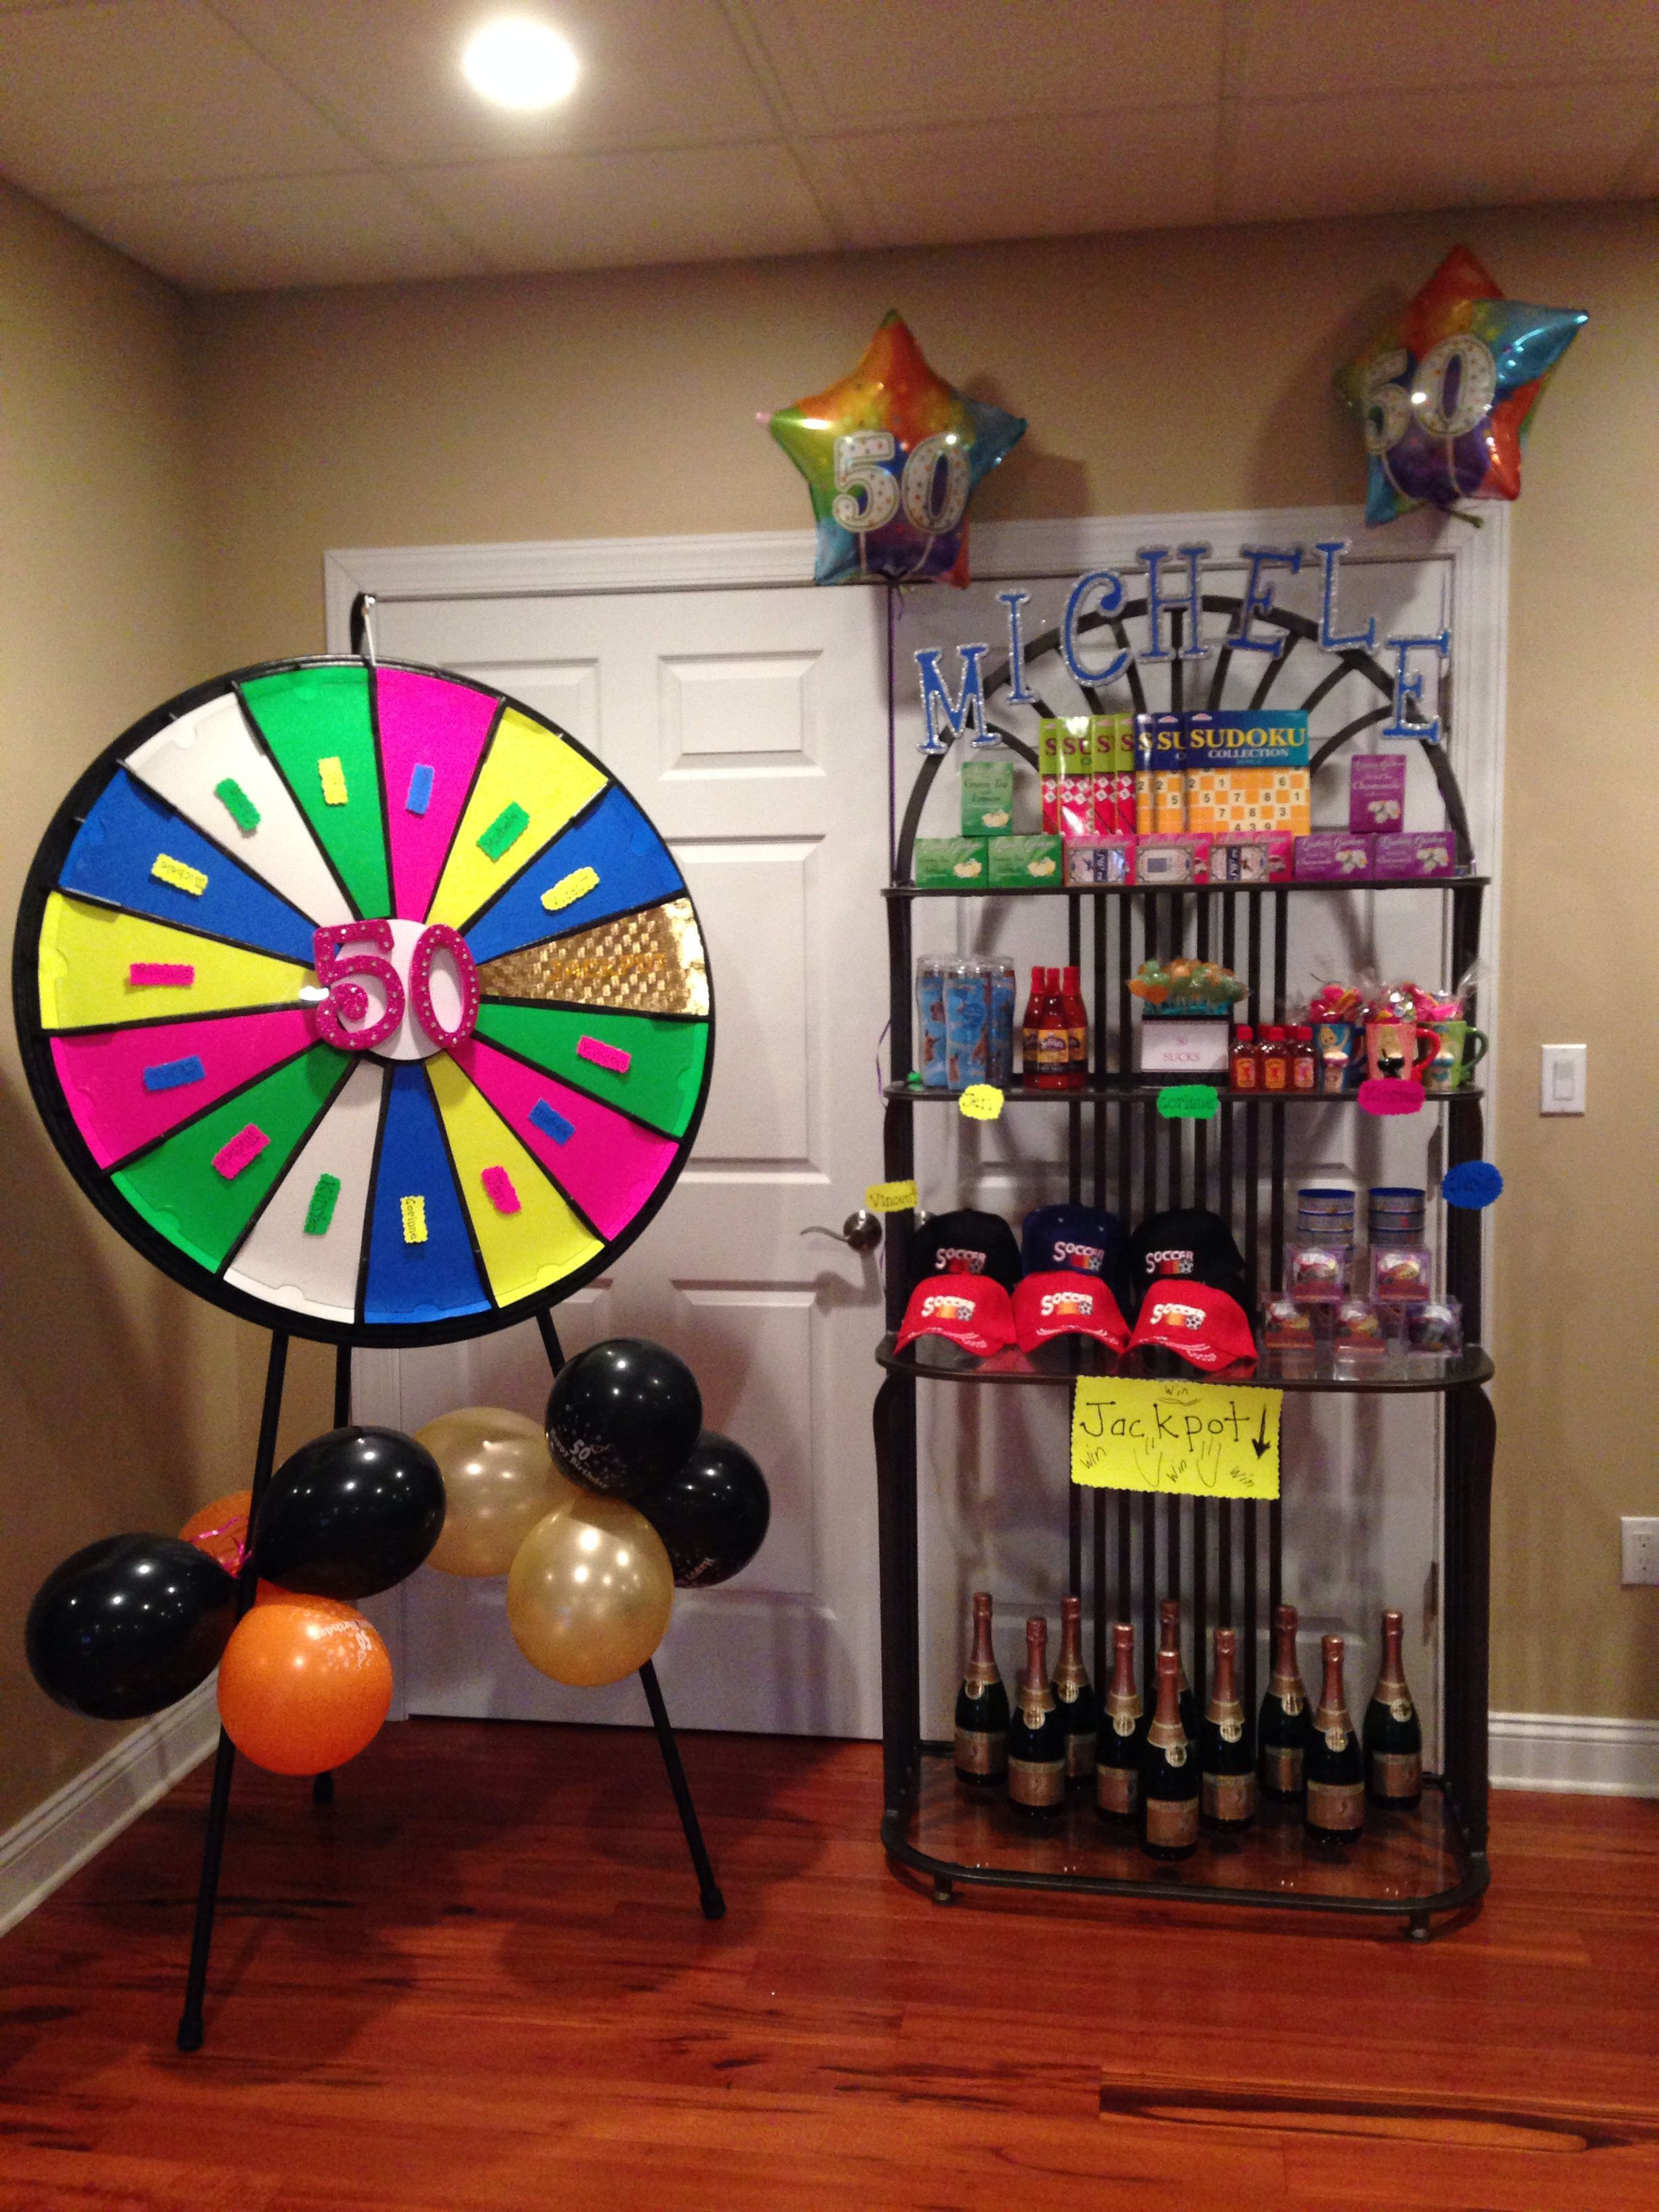 Diy 50th birthday party game ideas diy pinterest for Diy decoracion cumpleanos